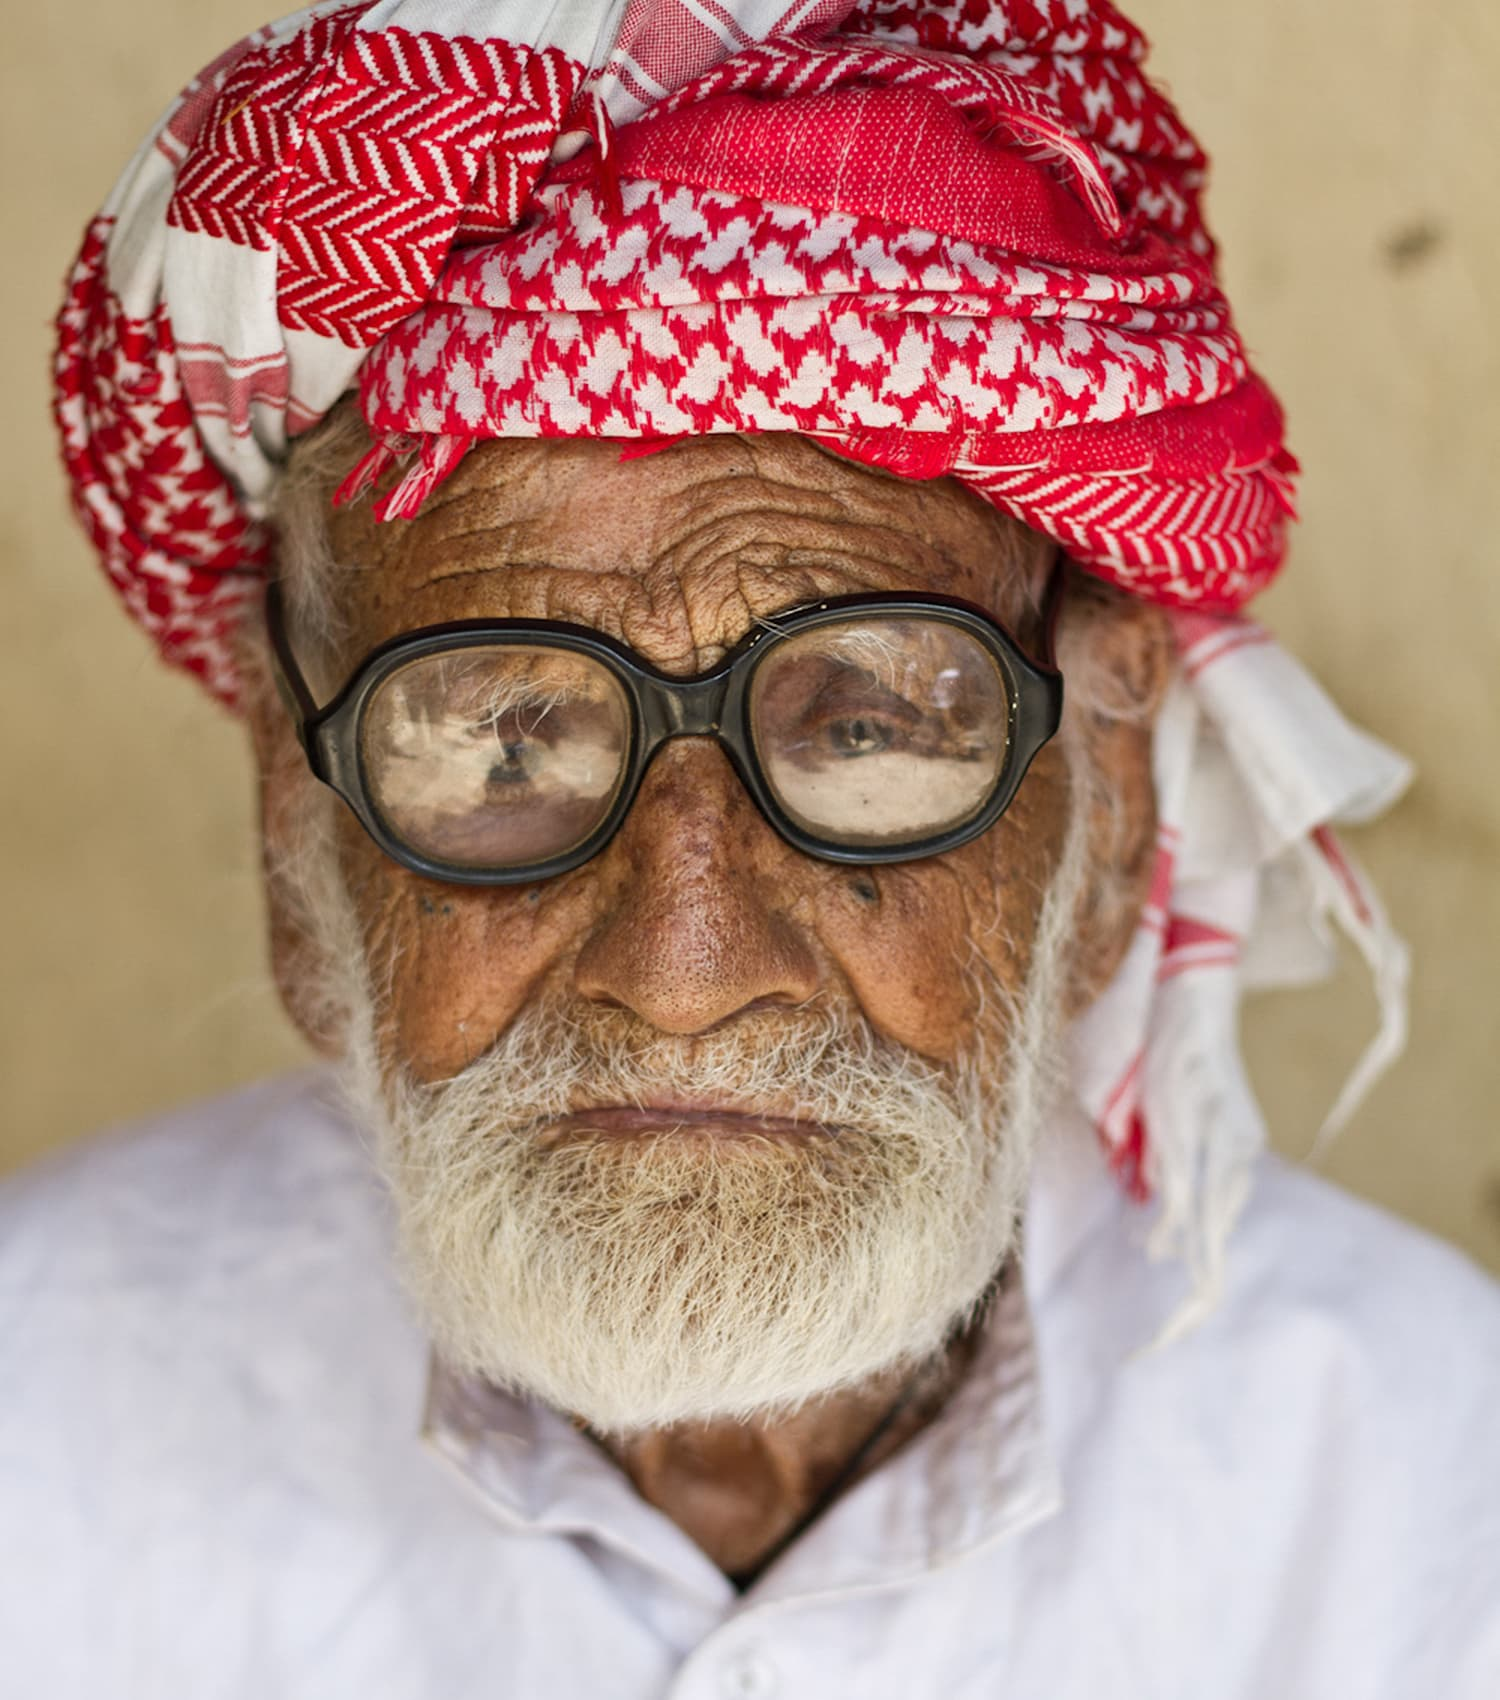 Muzaffar (Chacha Kalu) is pictured at his house in Chakwal. - Photo by author